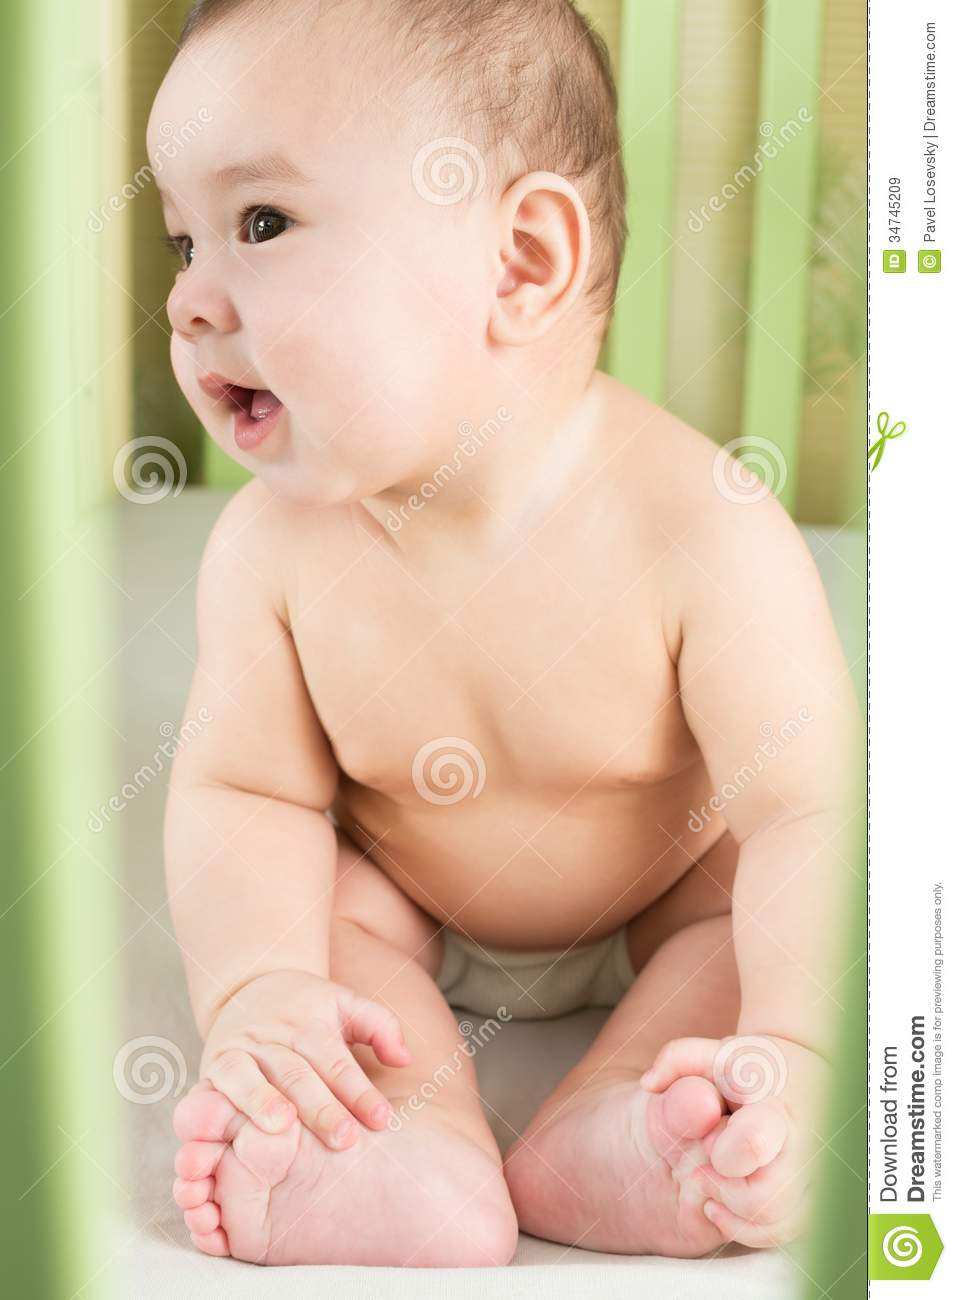 Download Naked Baby In A Diaper Sitting Stock Image - Image of little, hand: 34745209